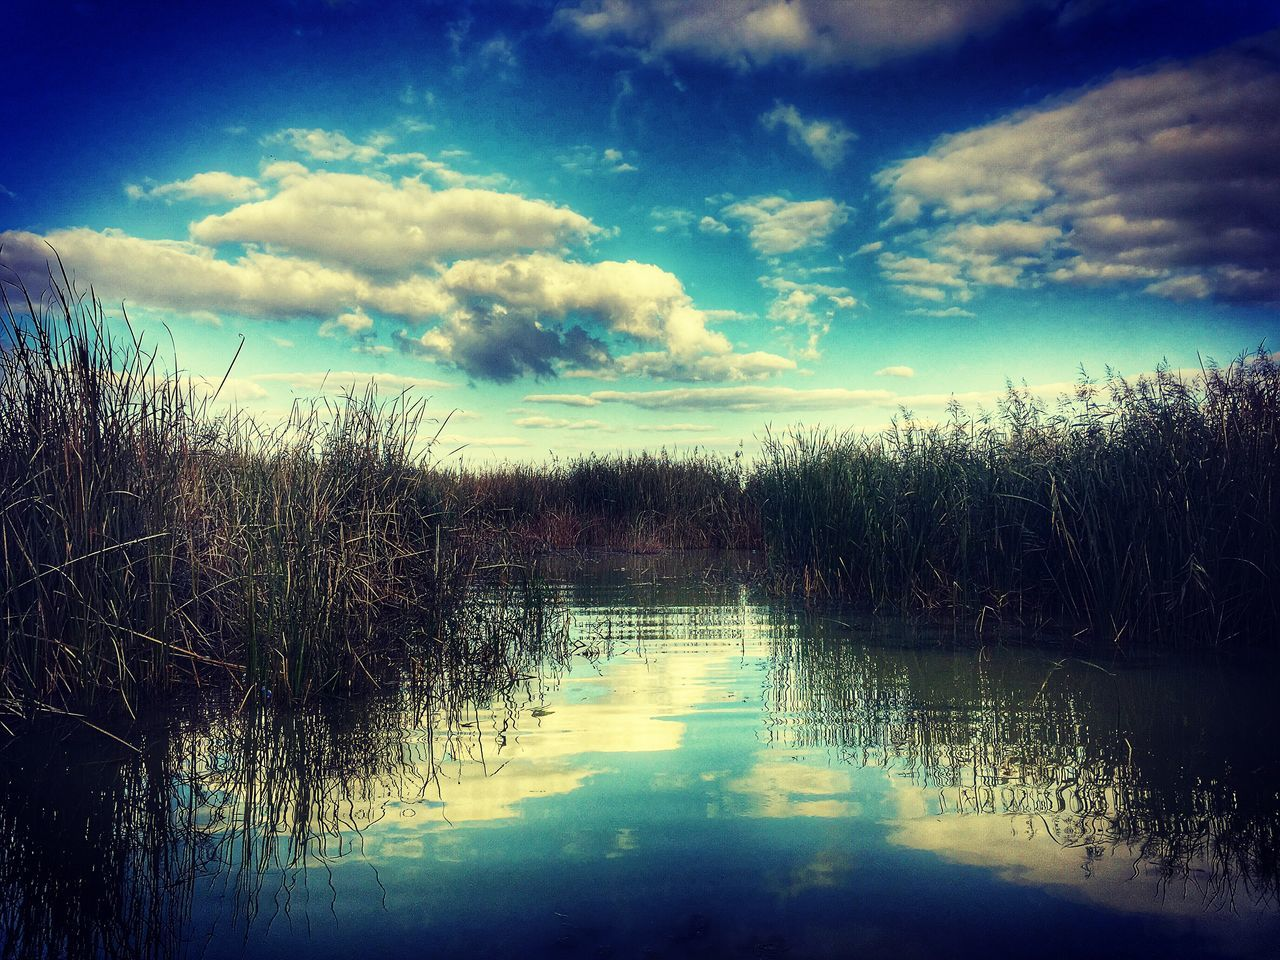 tranquil scene, tranquility, water, sky, reflection, cloud - sky, nature, scenics, beauty in nature, no people, outdoors, idyllic, lake, day, tree, grass